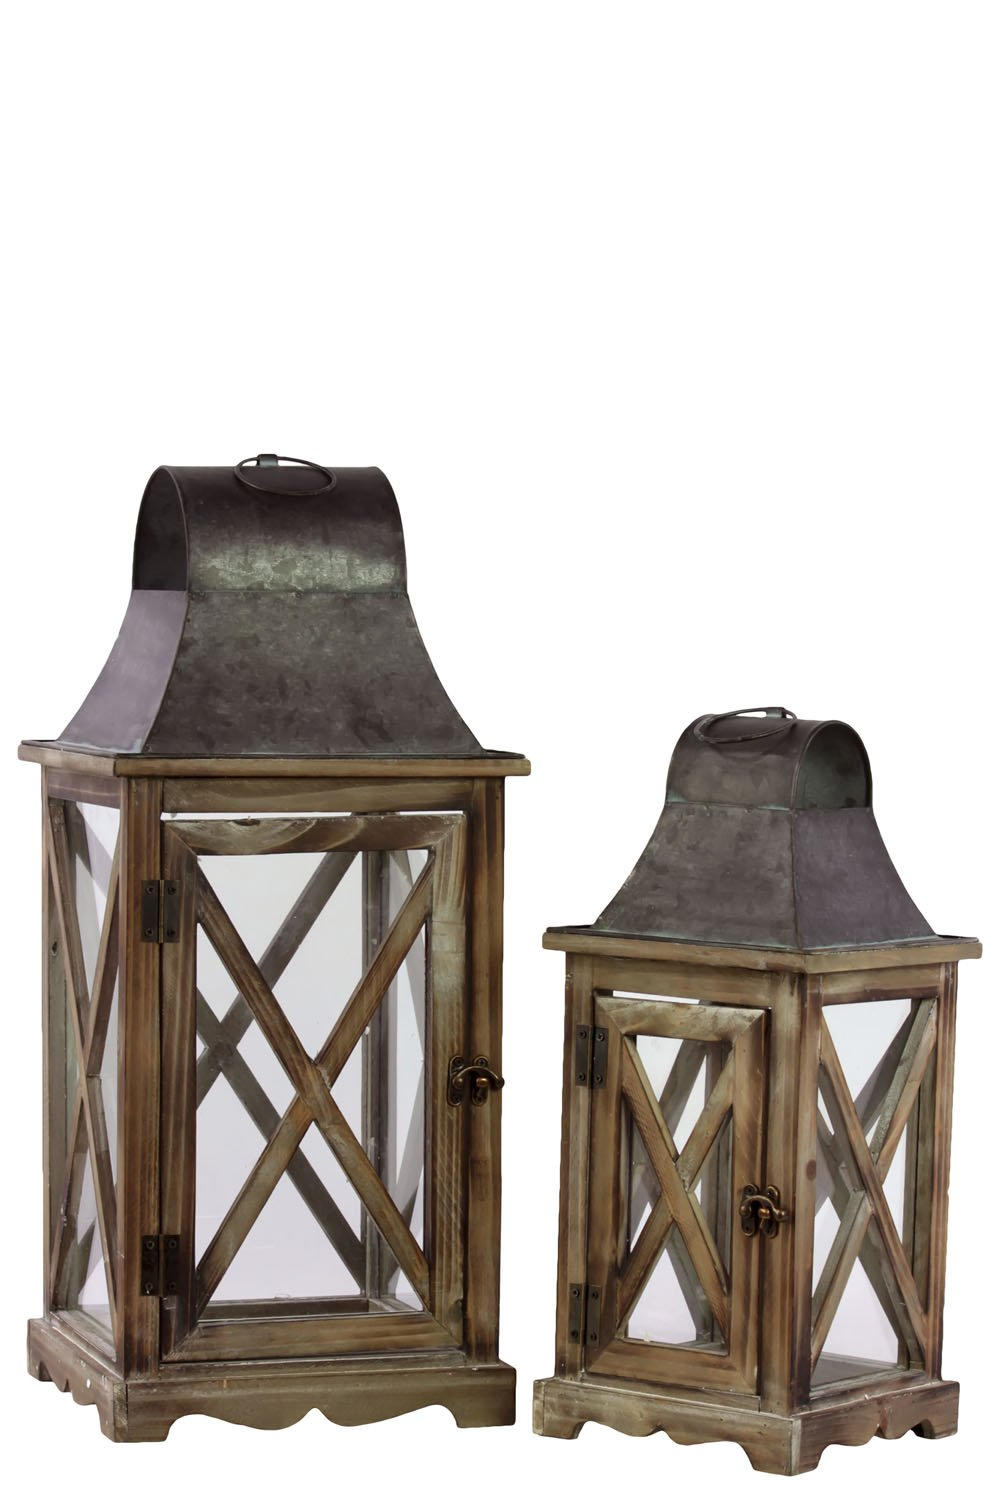 Urban Trends 23800 Square Lantern with Metal Top and Hangers Set of Two Natural Wood Finish Brown